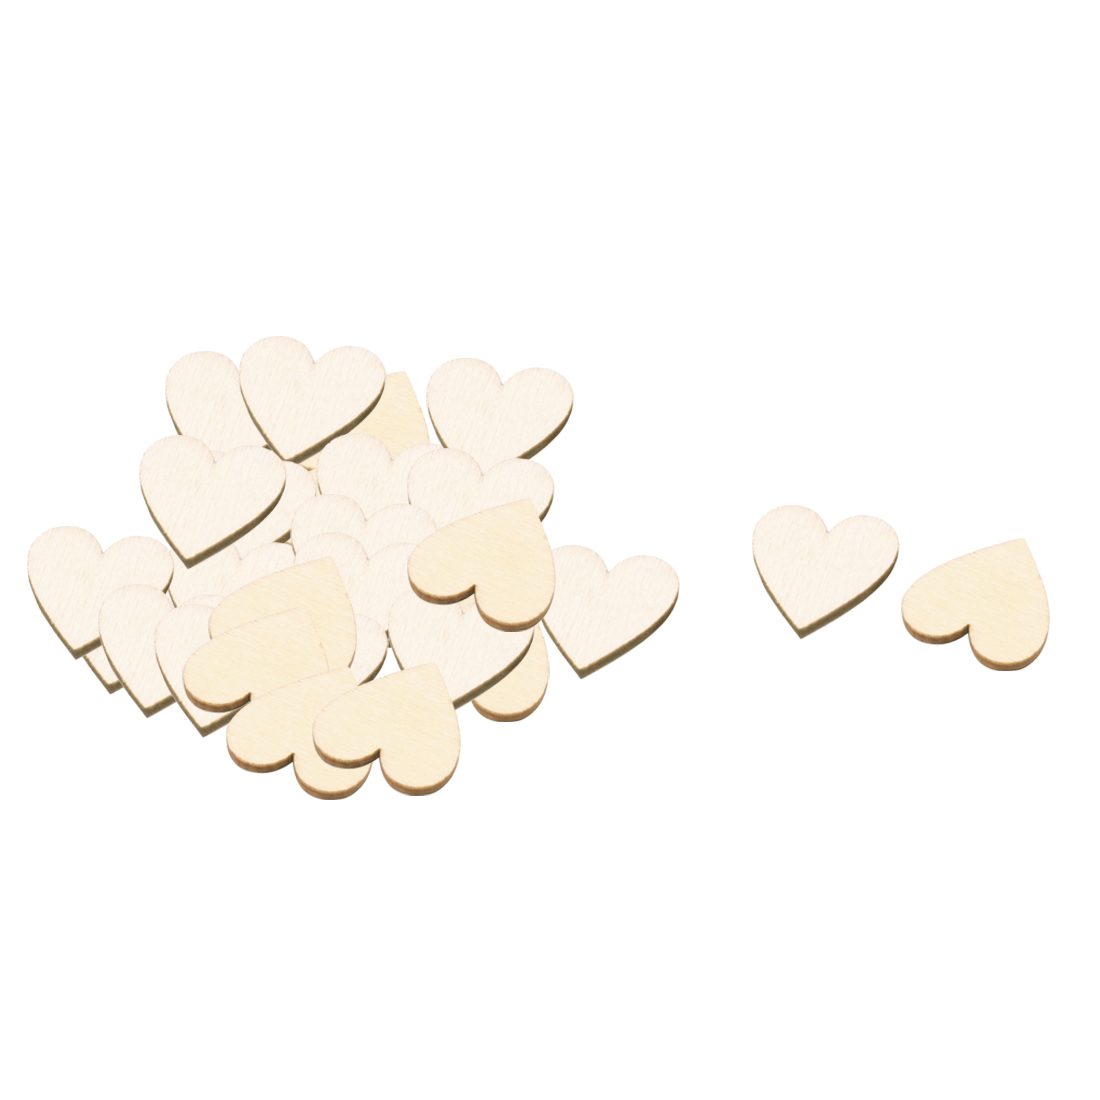 Wooden Love Heart Shaped Wedding Decor DIY Accessories Embellishment Beige 20 x 17mm 30 Pcs